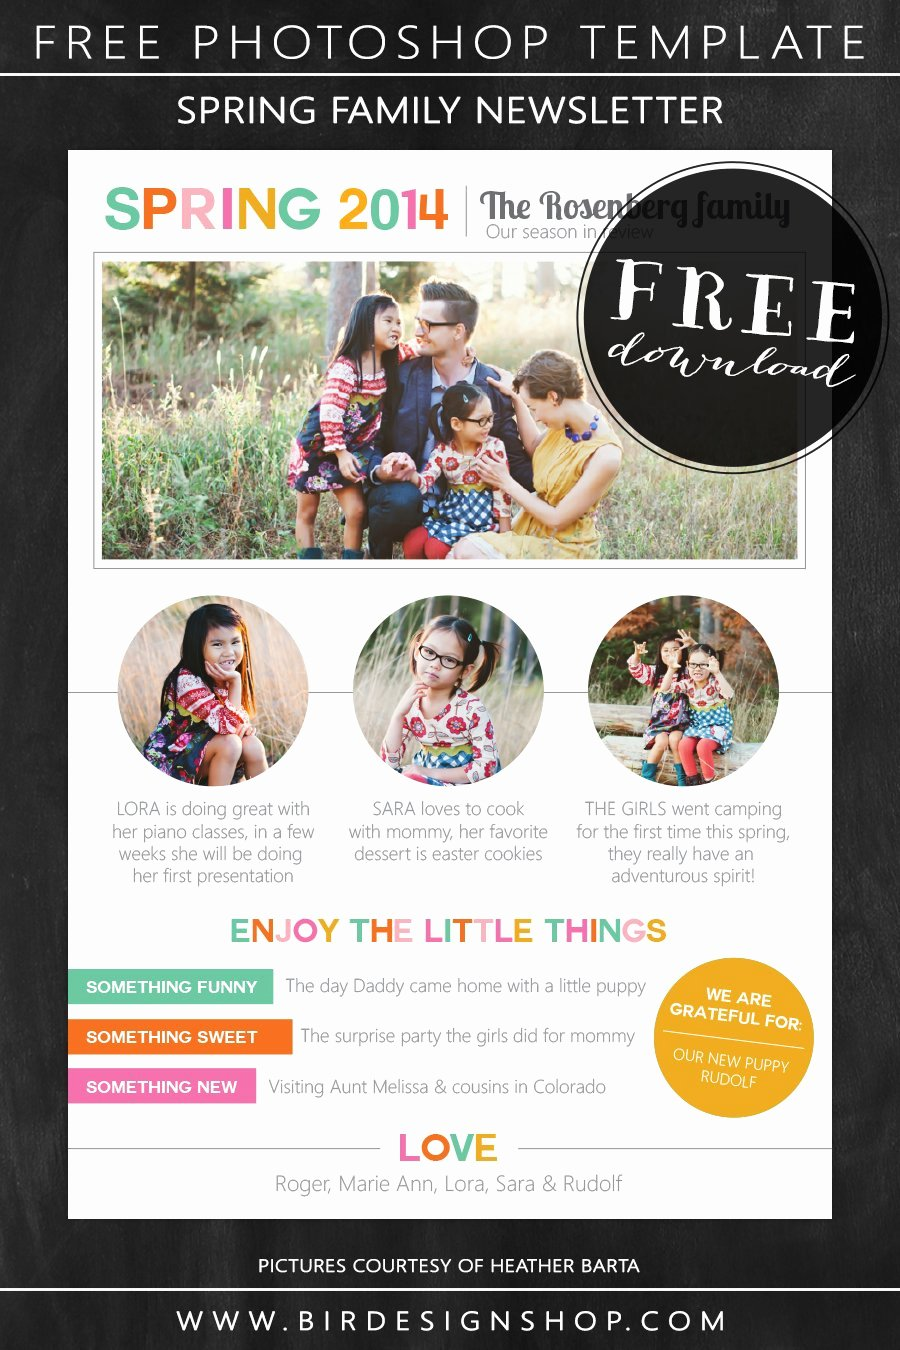 Free Family Newsletter Template Elegant Spring Family Newsletter Free Photoshop Template – Birdesign